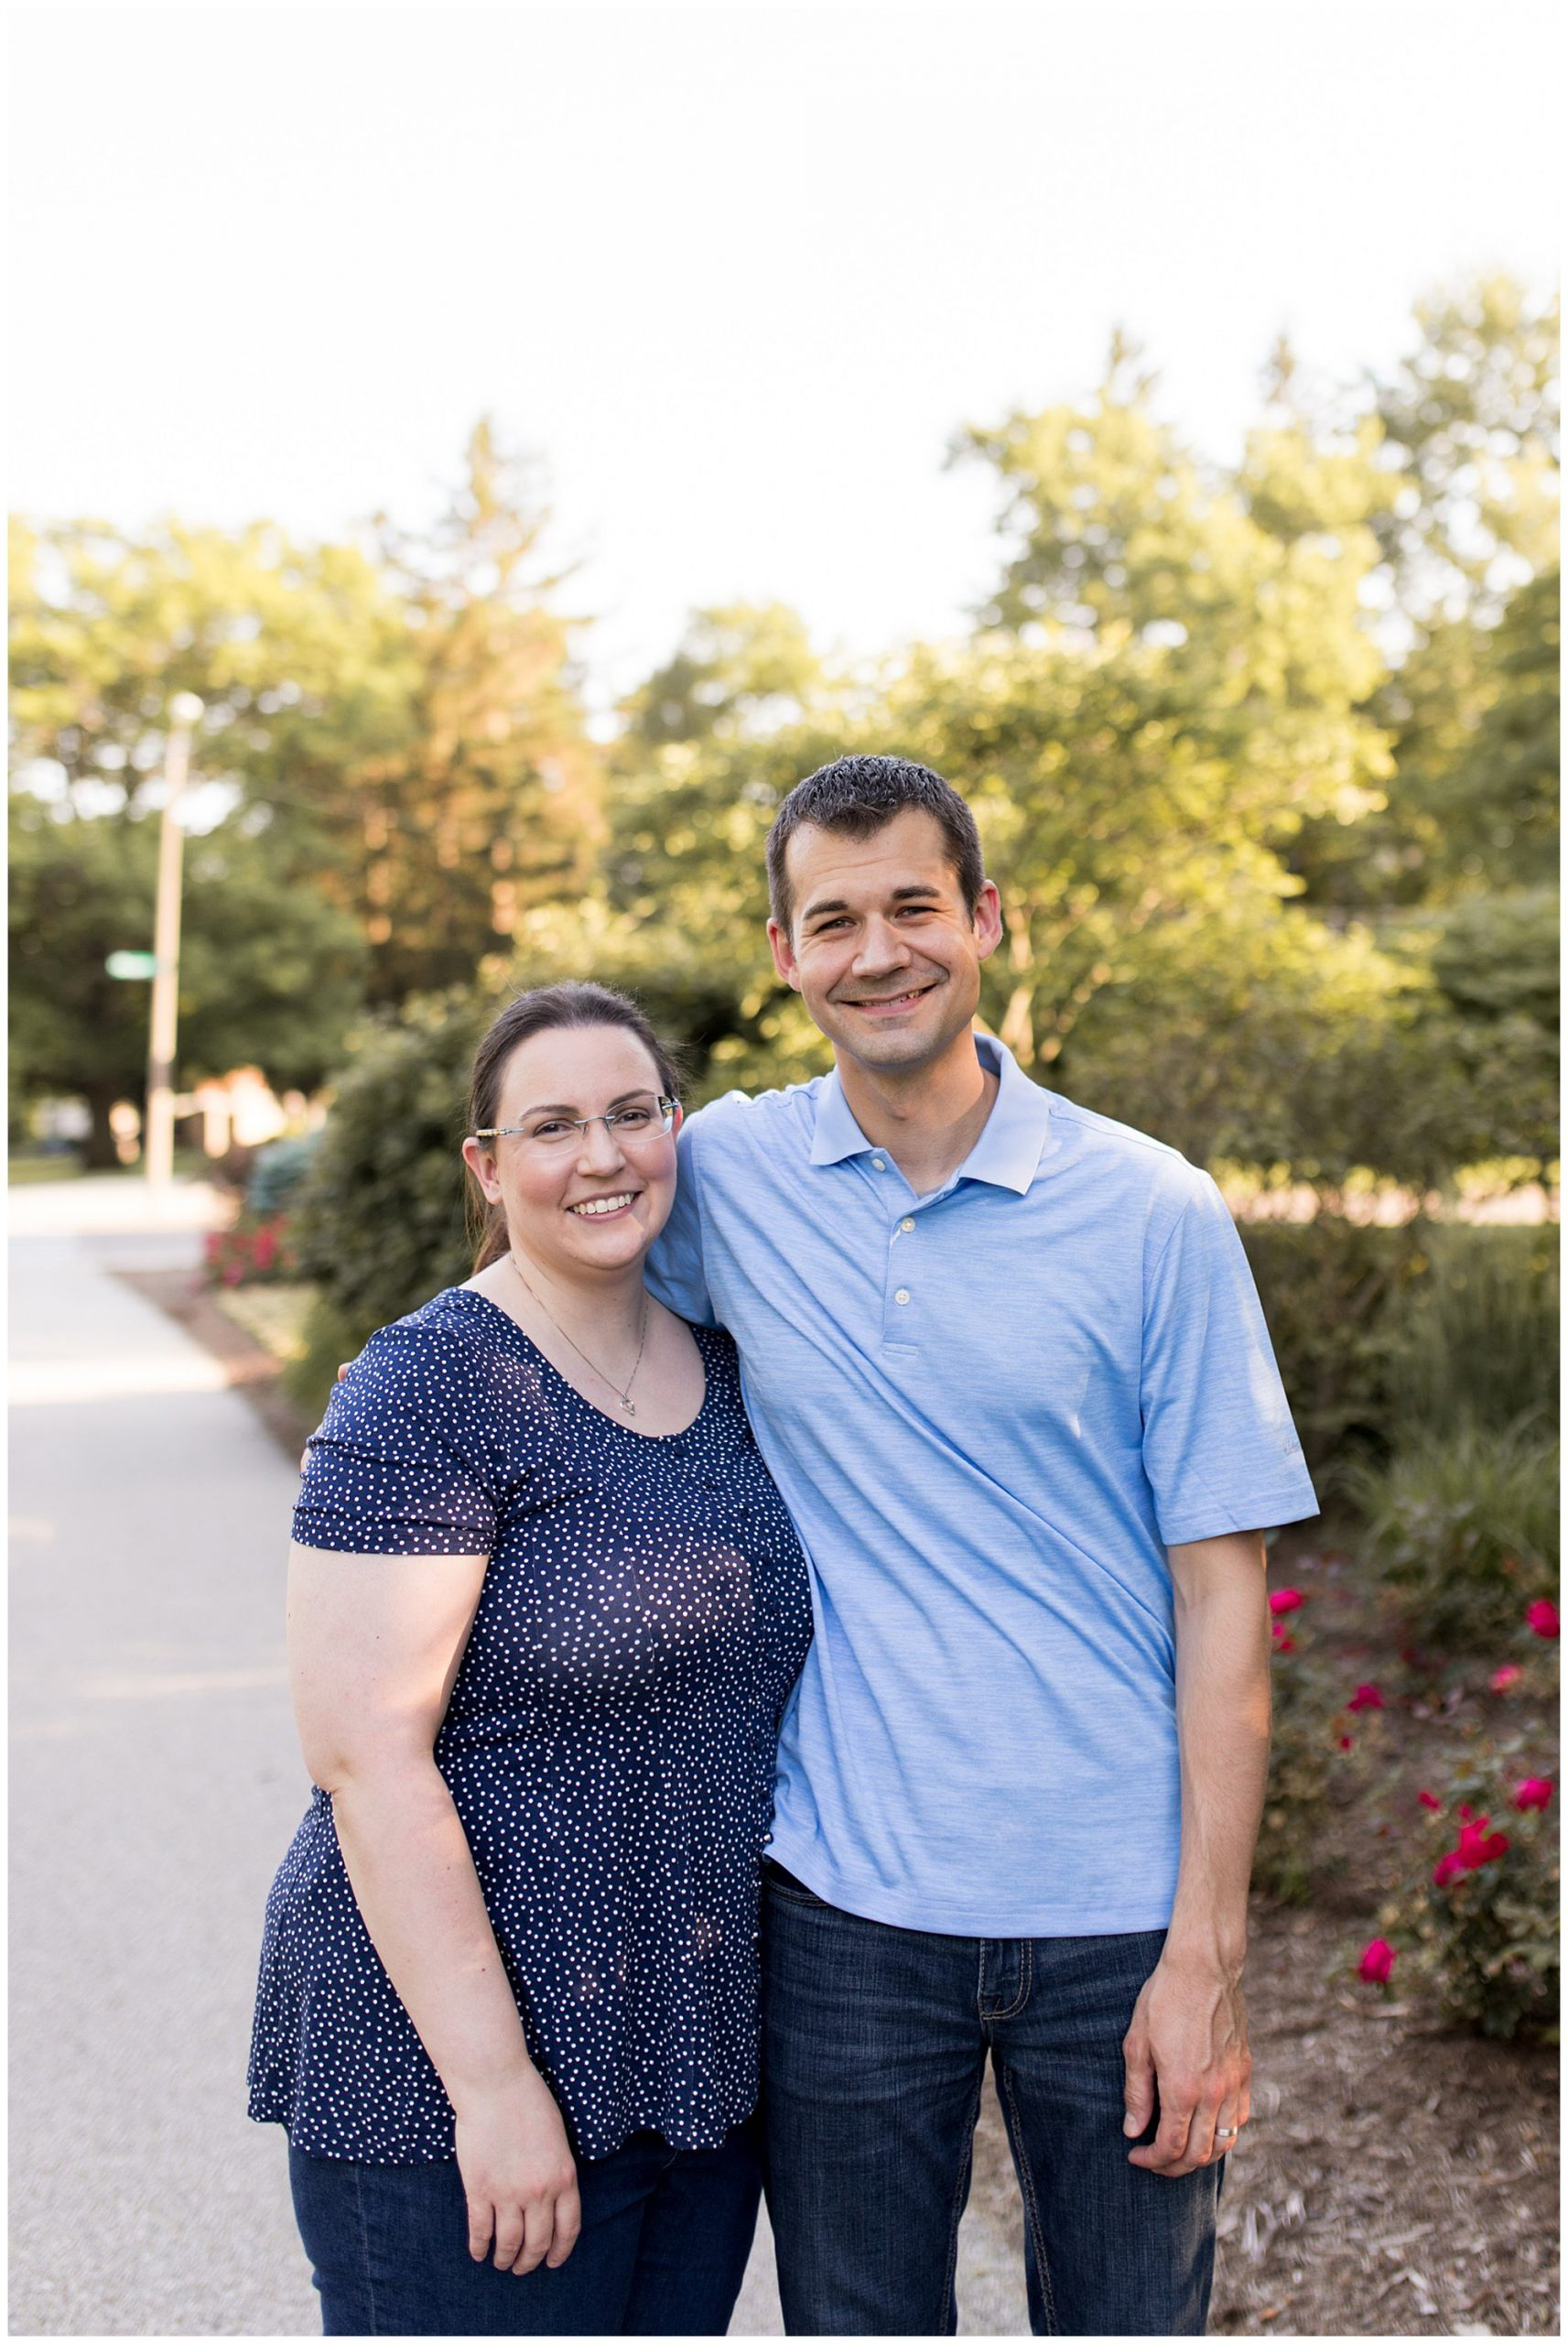 Ball State University family session in Muncie Indiana